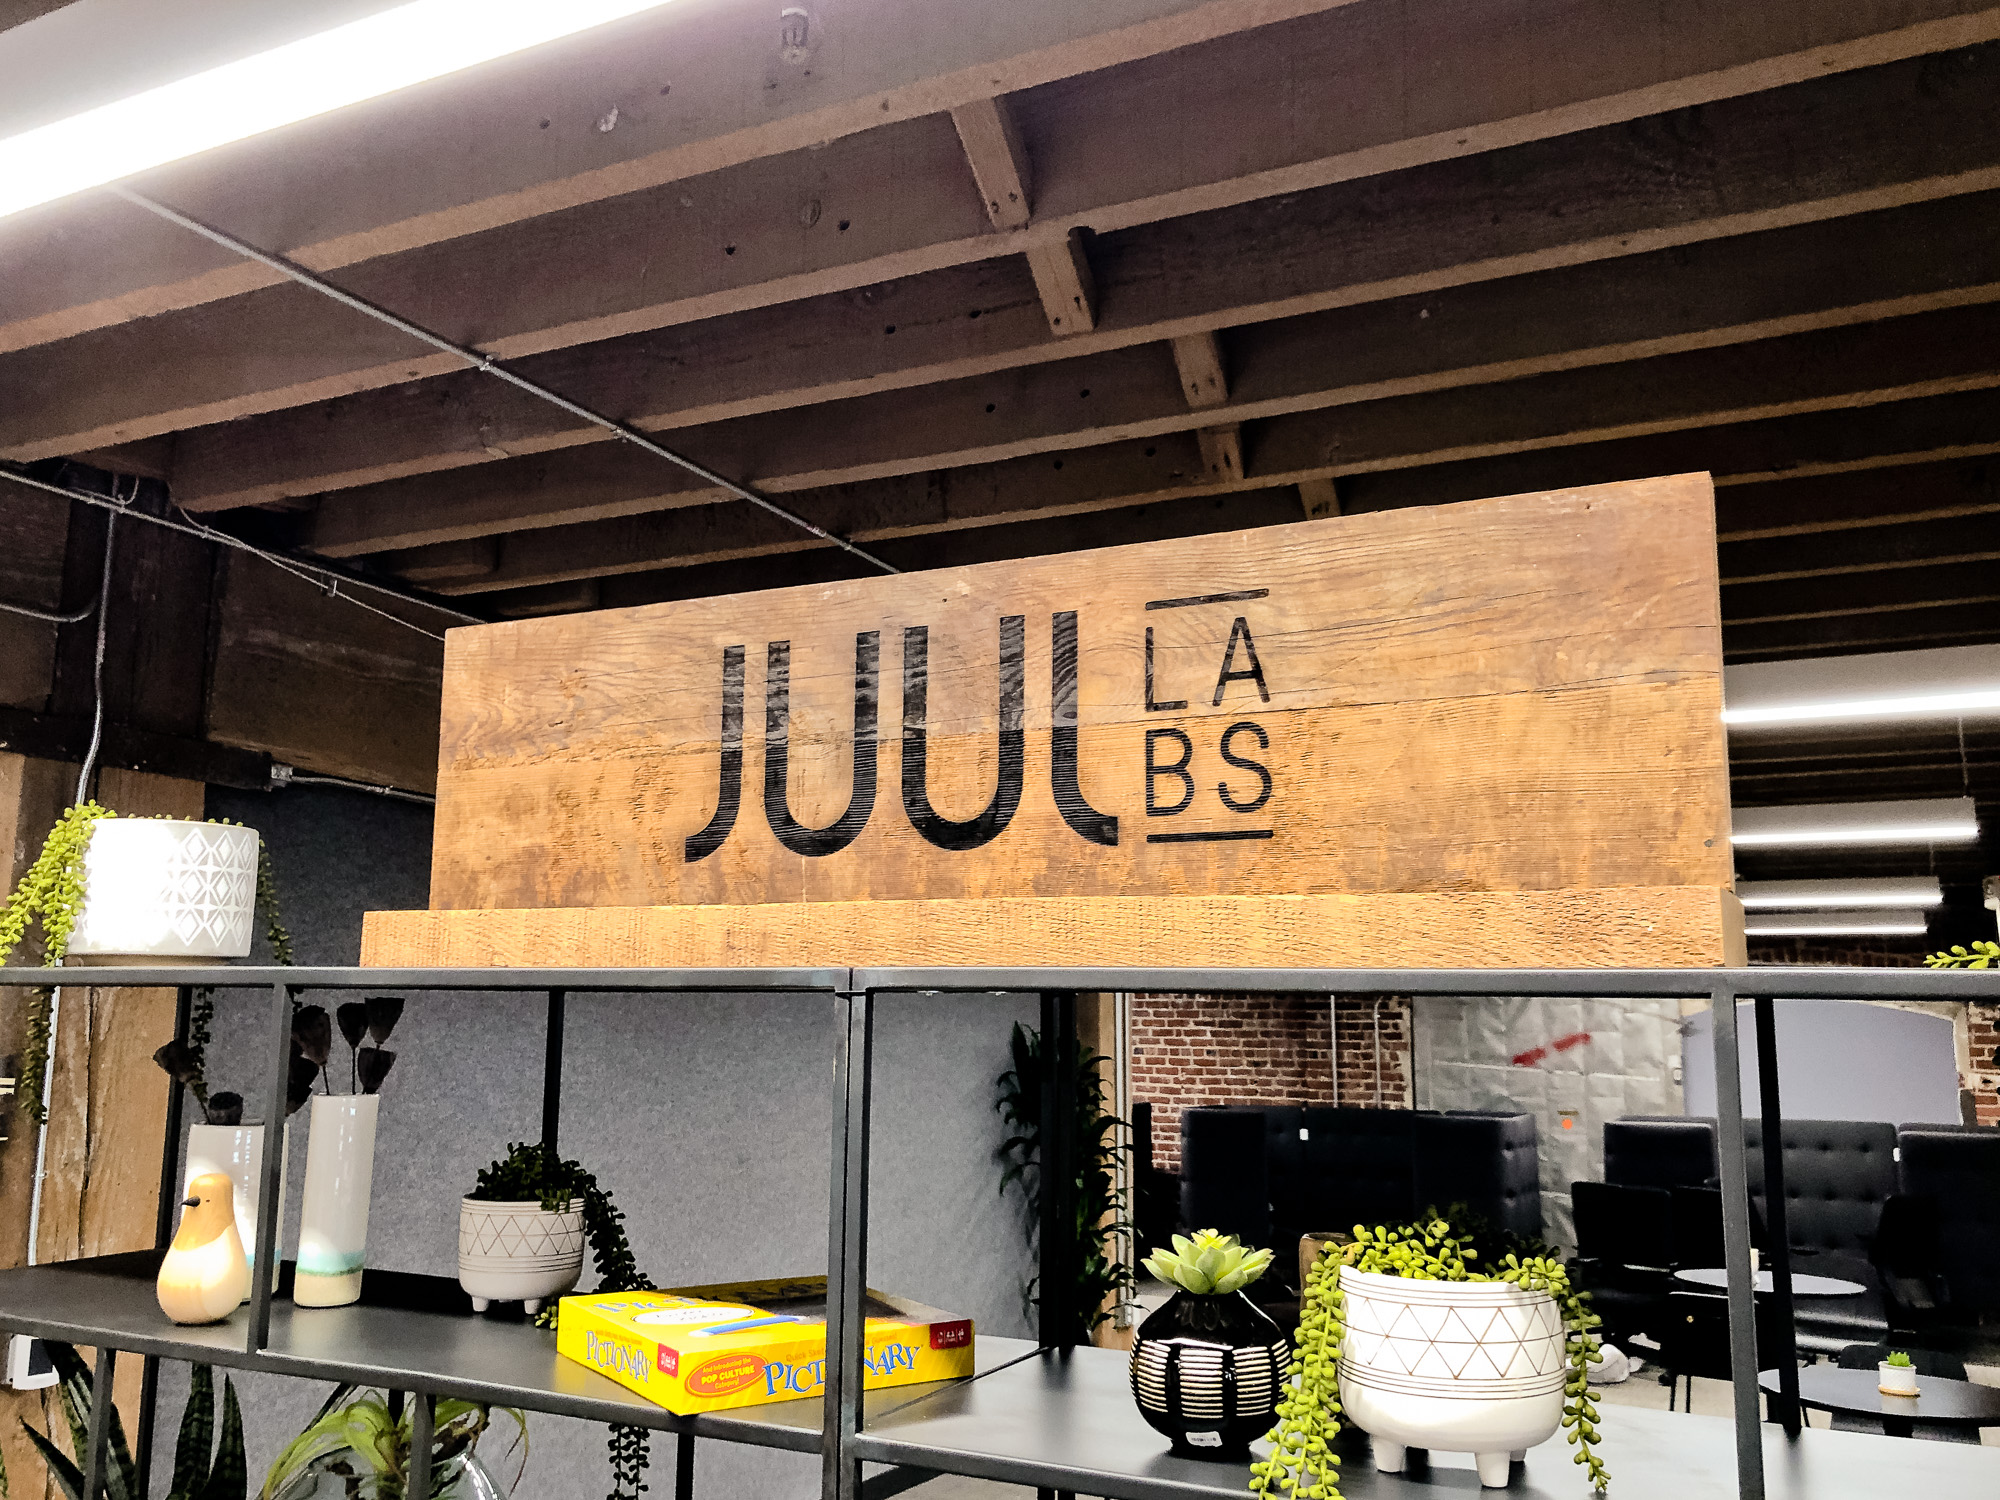 Reclaimed wood sign with etched logo on a shelf for the San Francisco office of Juul, an electronic cigarette company.